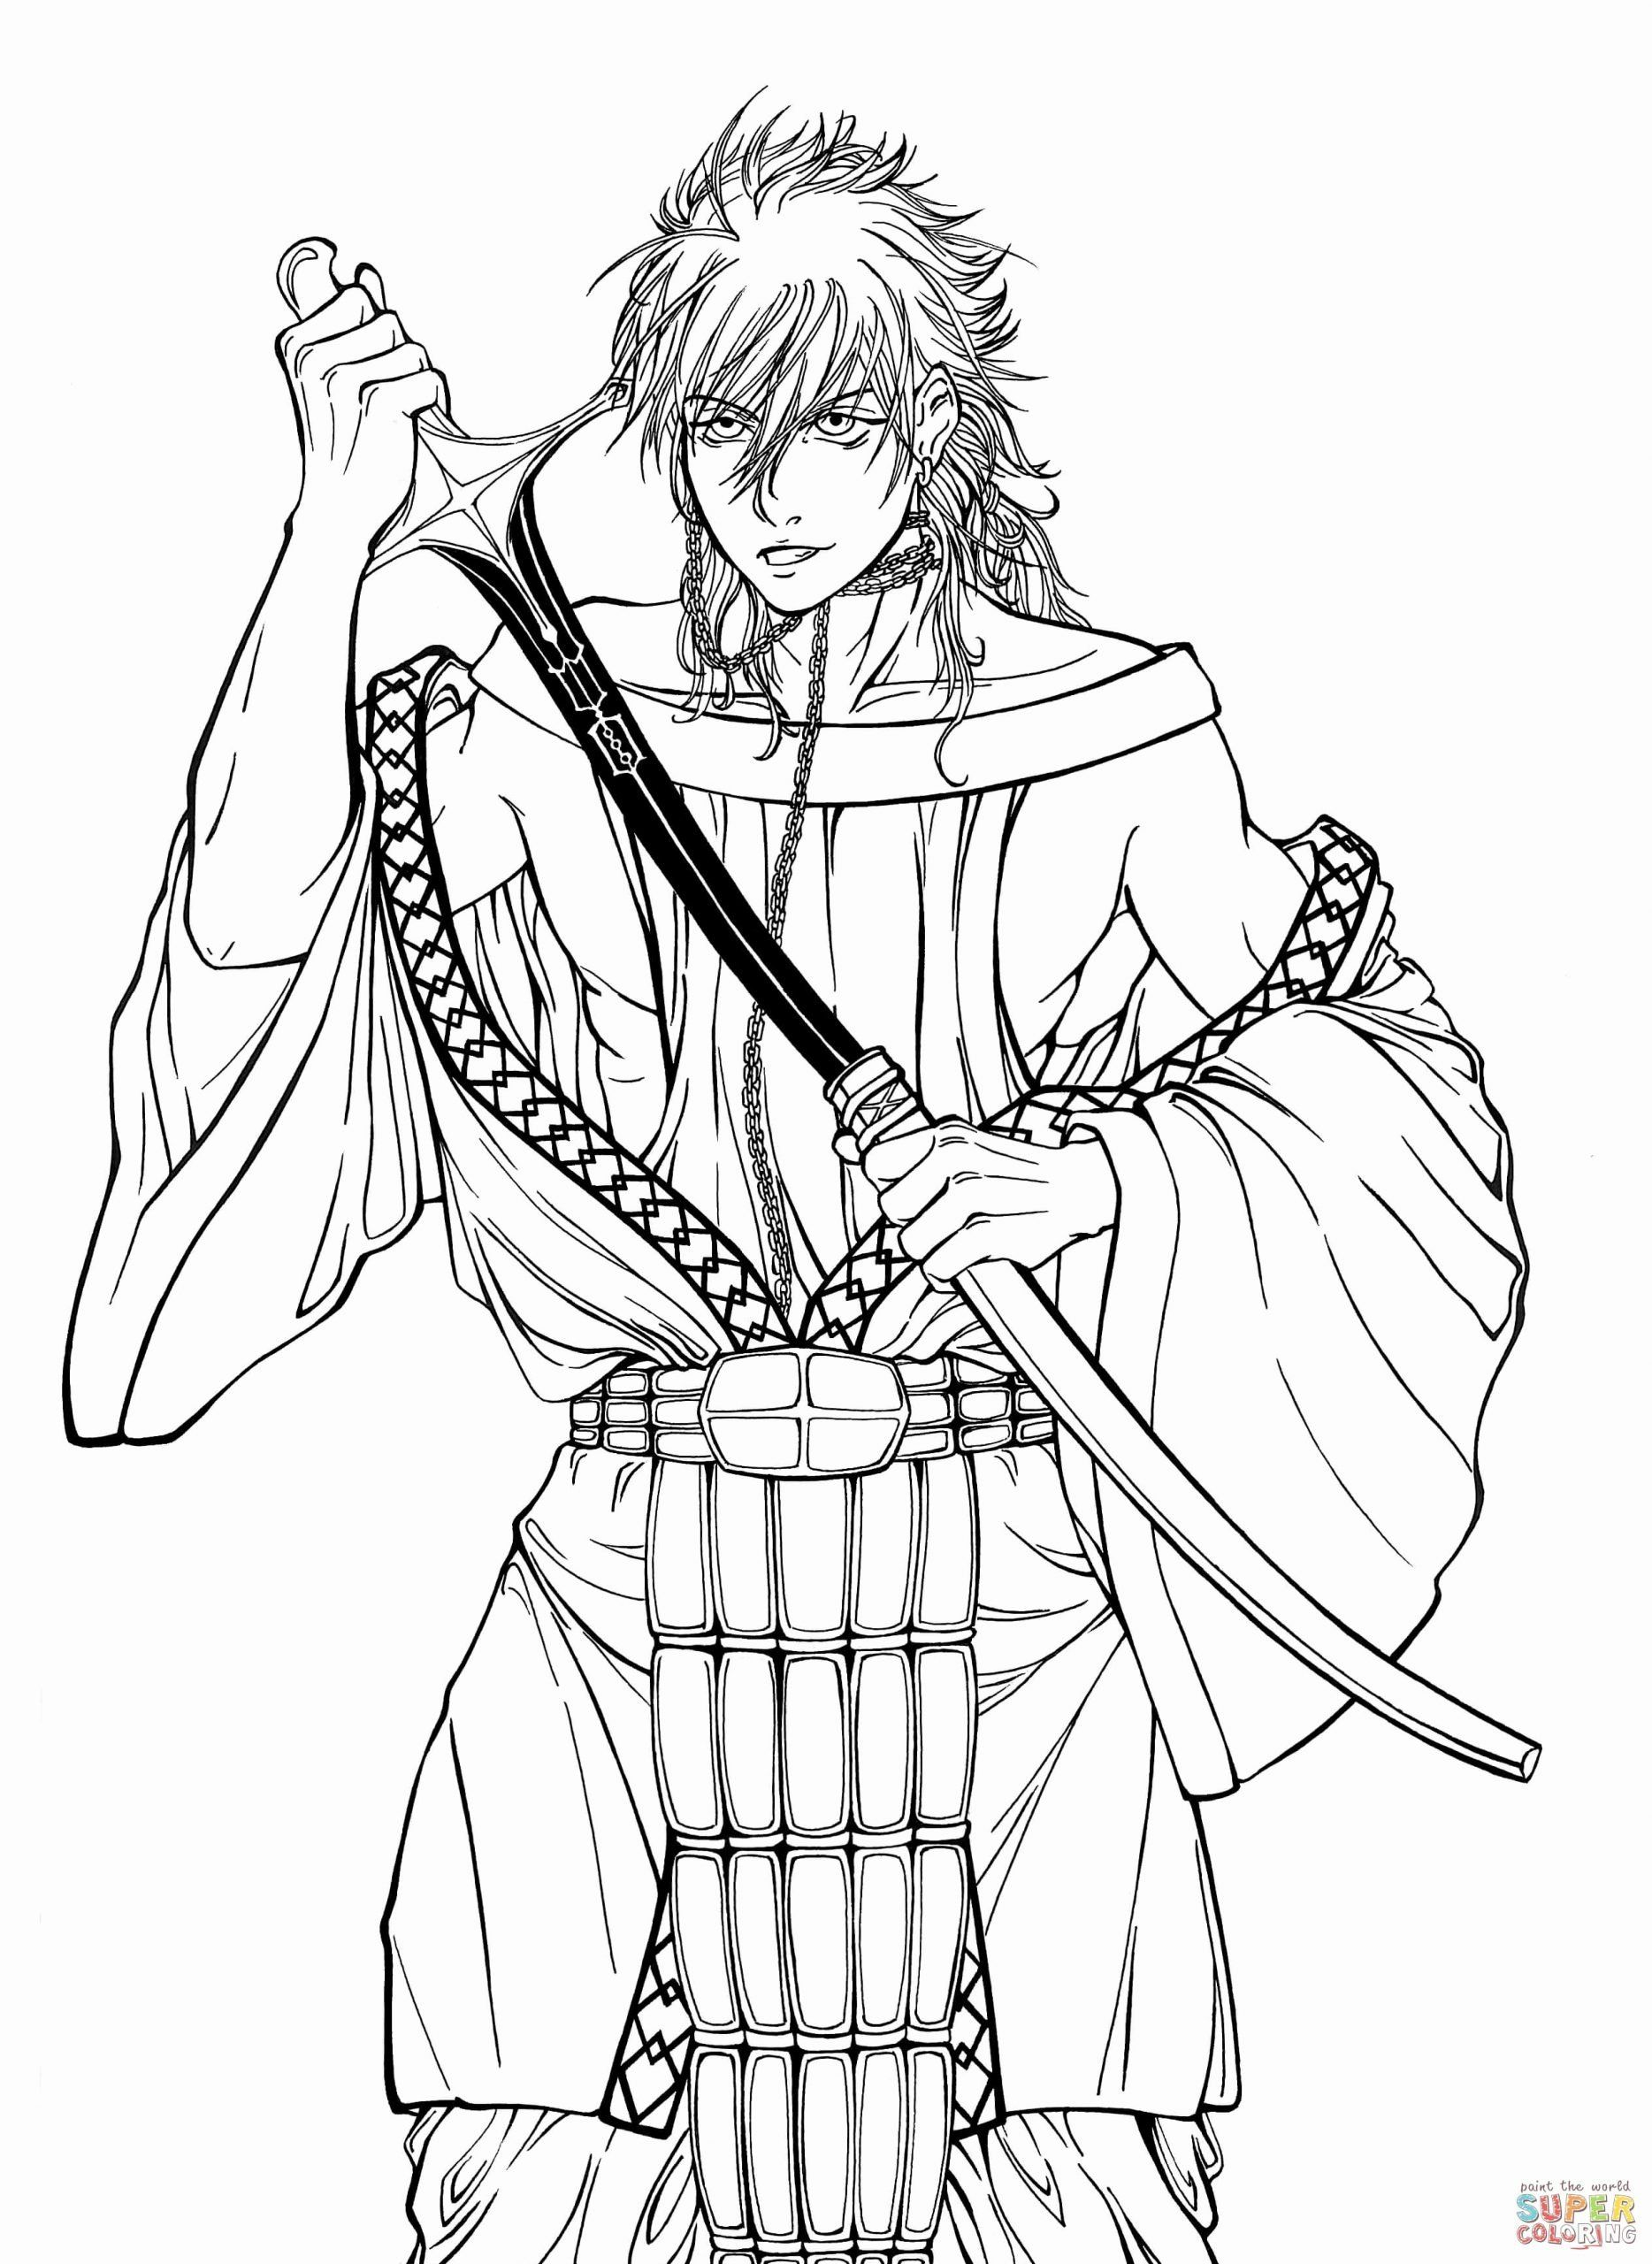 Magi Anime Coloring Pages Printable New Sharrkan From Manga Anime Series Magi The Labyrinth Of Magic Kingdom Coloring Pages Anime [ 2560 x 1868 Pixel ]